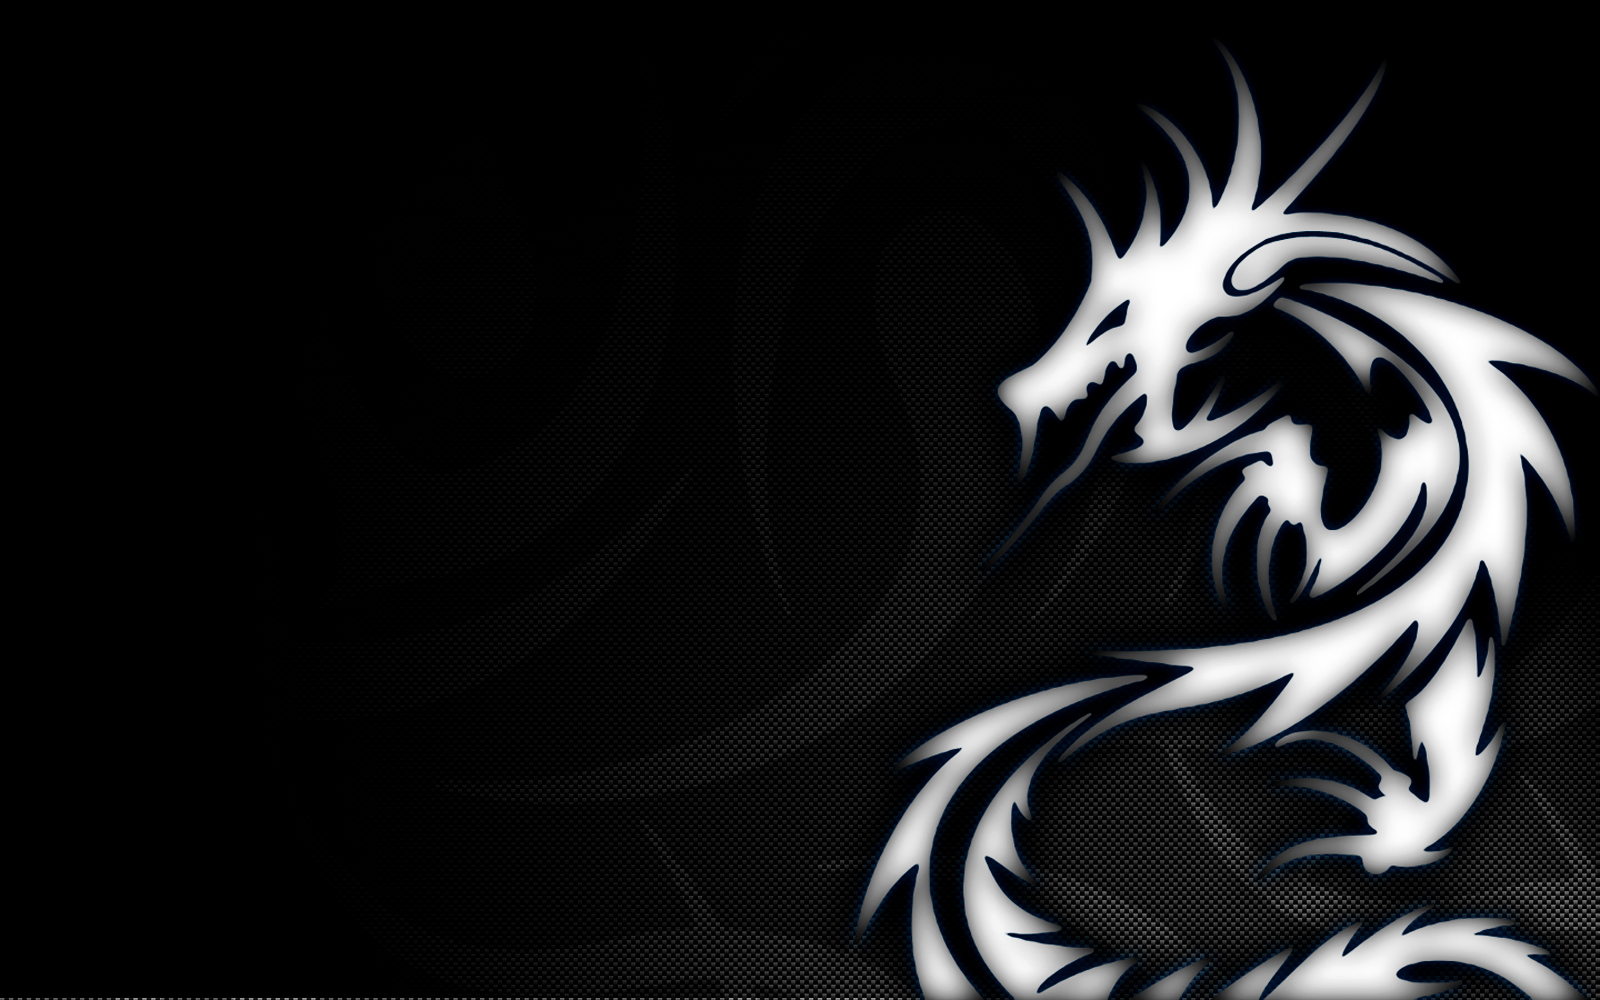 Free Download Hd Wallpapers Download Wallpapers In Hd White Dragon